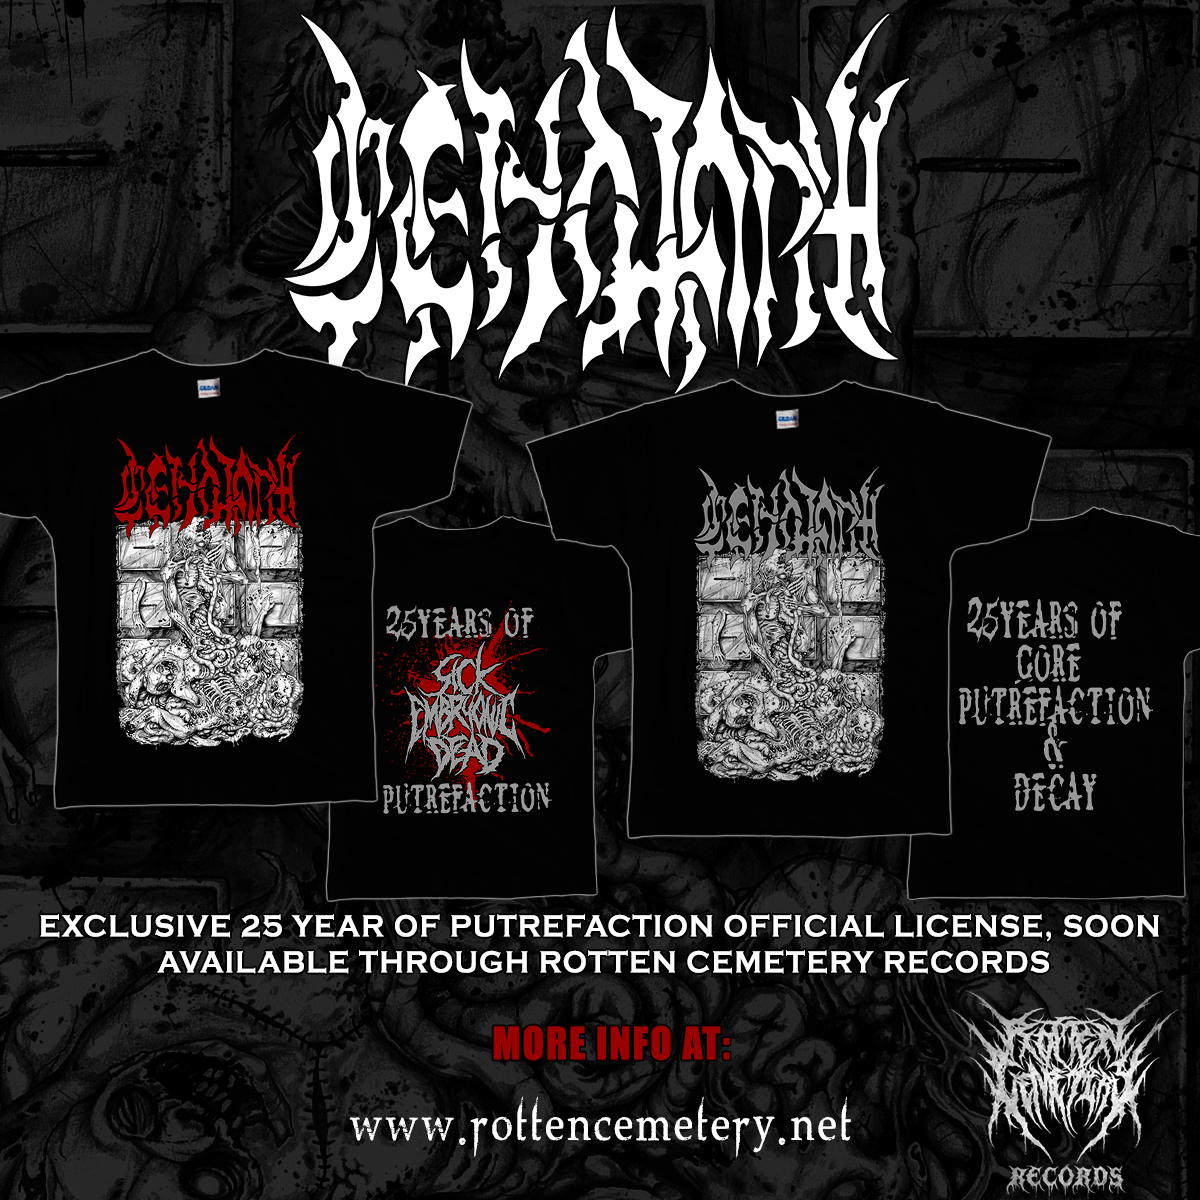 CENOTAPH - 25 Years of Gore & Putrefaction T-shirt